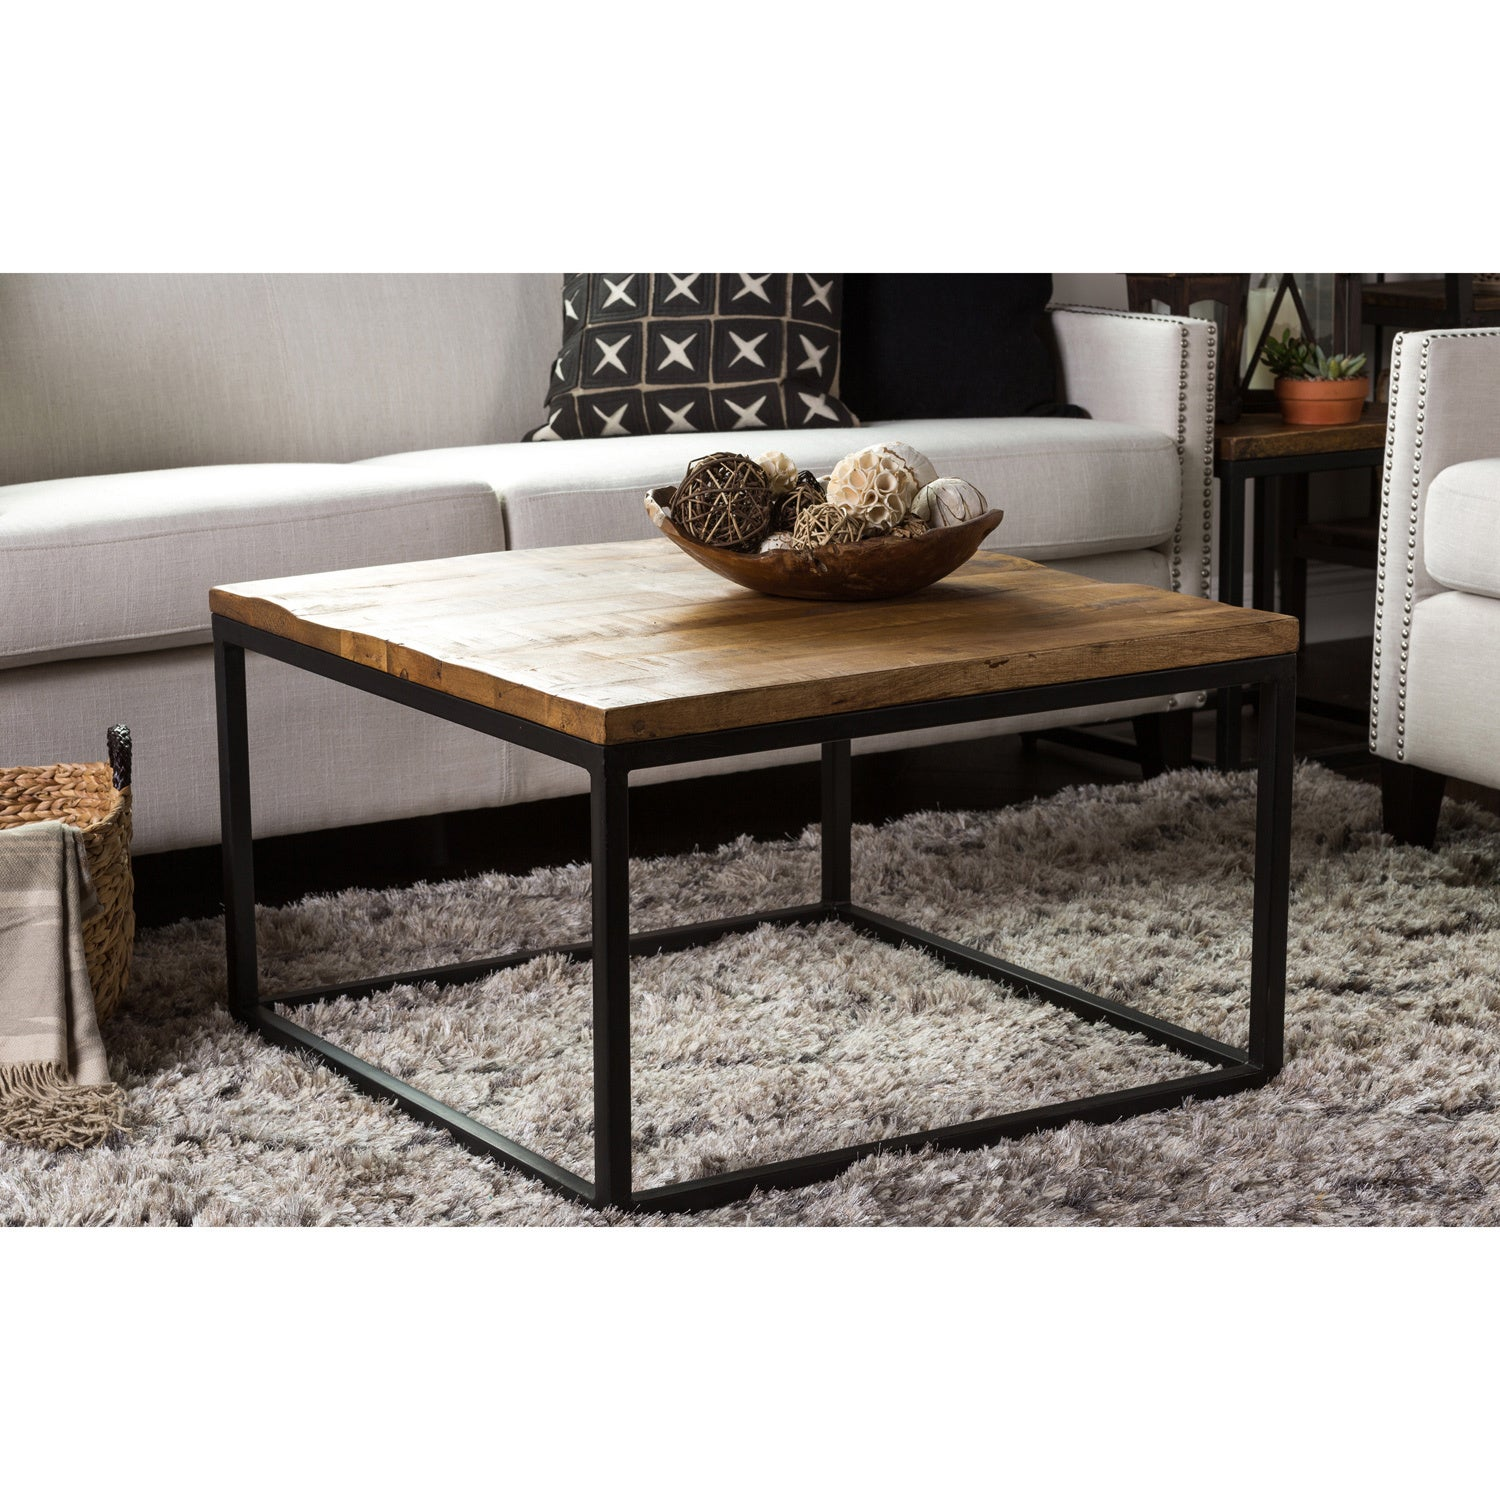 Shop Paris Natural Wood And Iron 30 Inch Square Coffee Table By Kosas Home    Free Shipping Today   Overstock.com   10812699